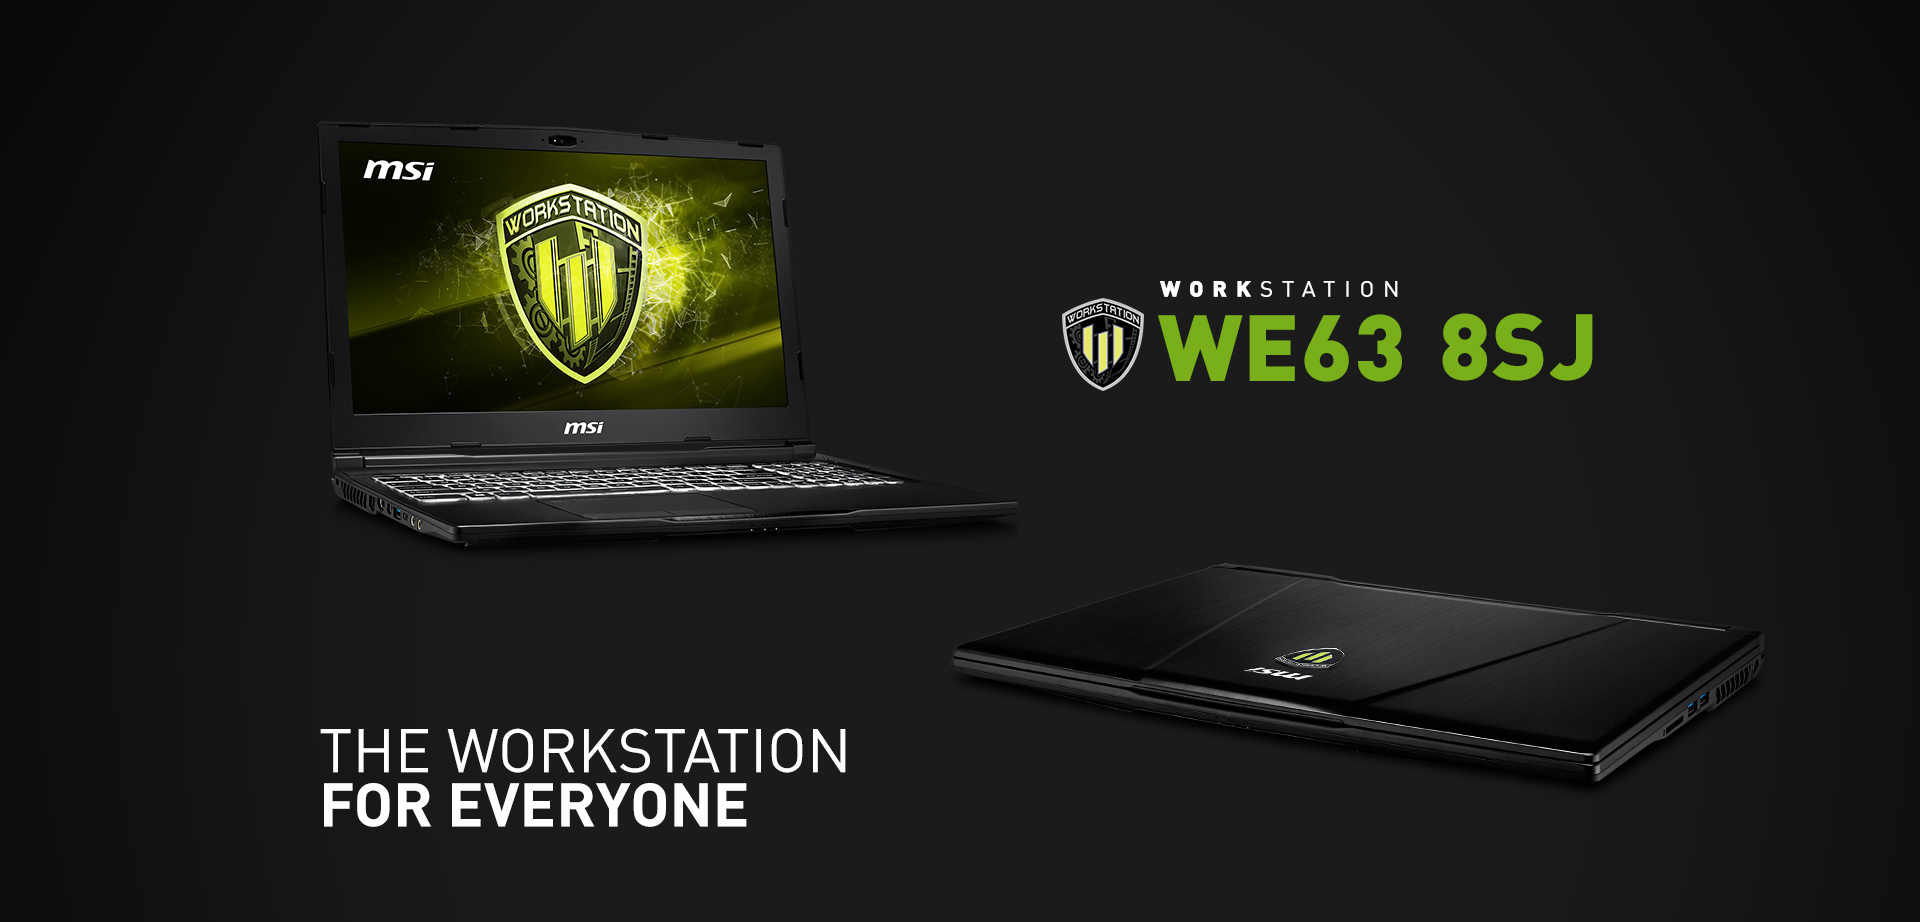 https://asset.msi.com/global/picture/image/feature/workstation/WE63/we63-8sj-overview.jpg